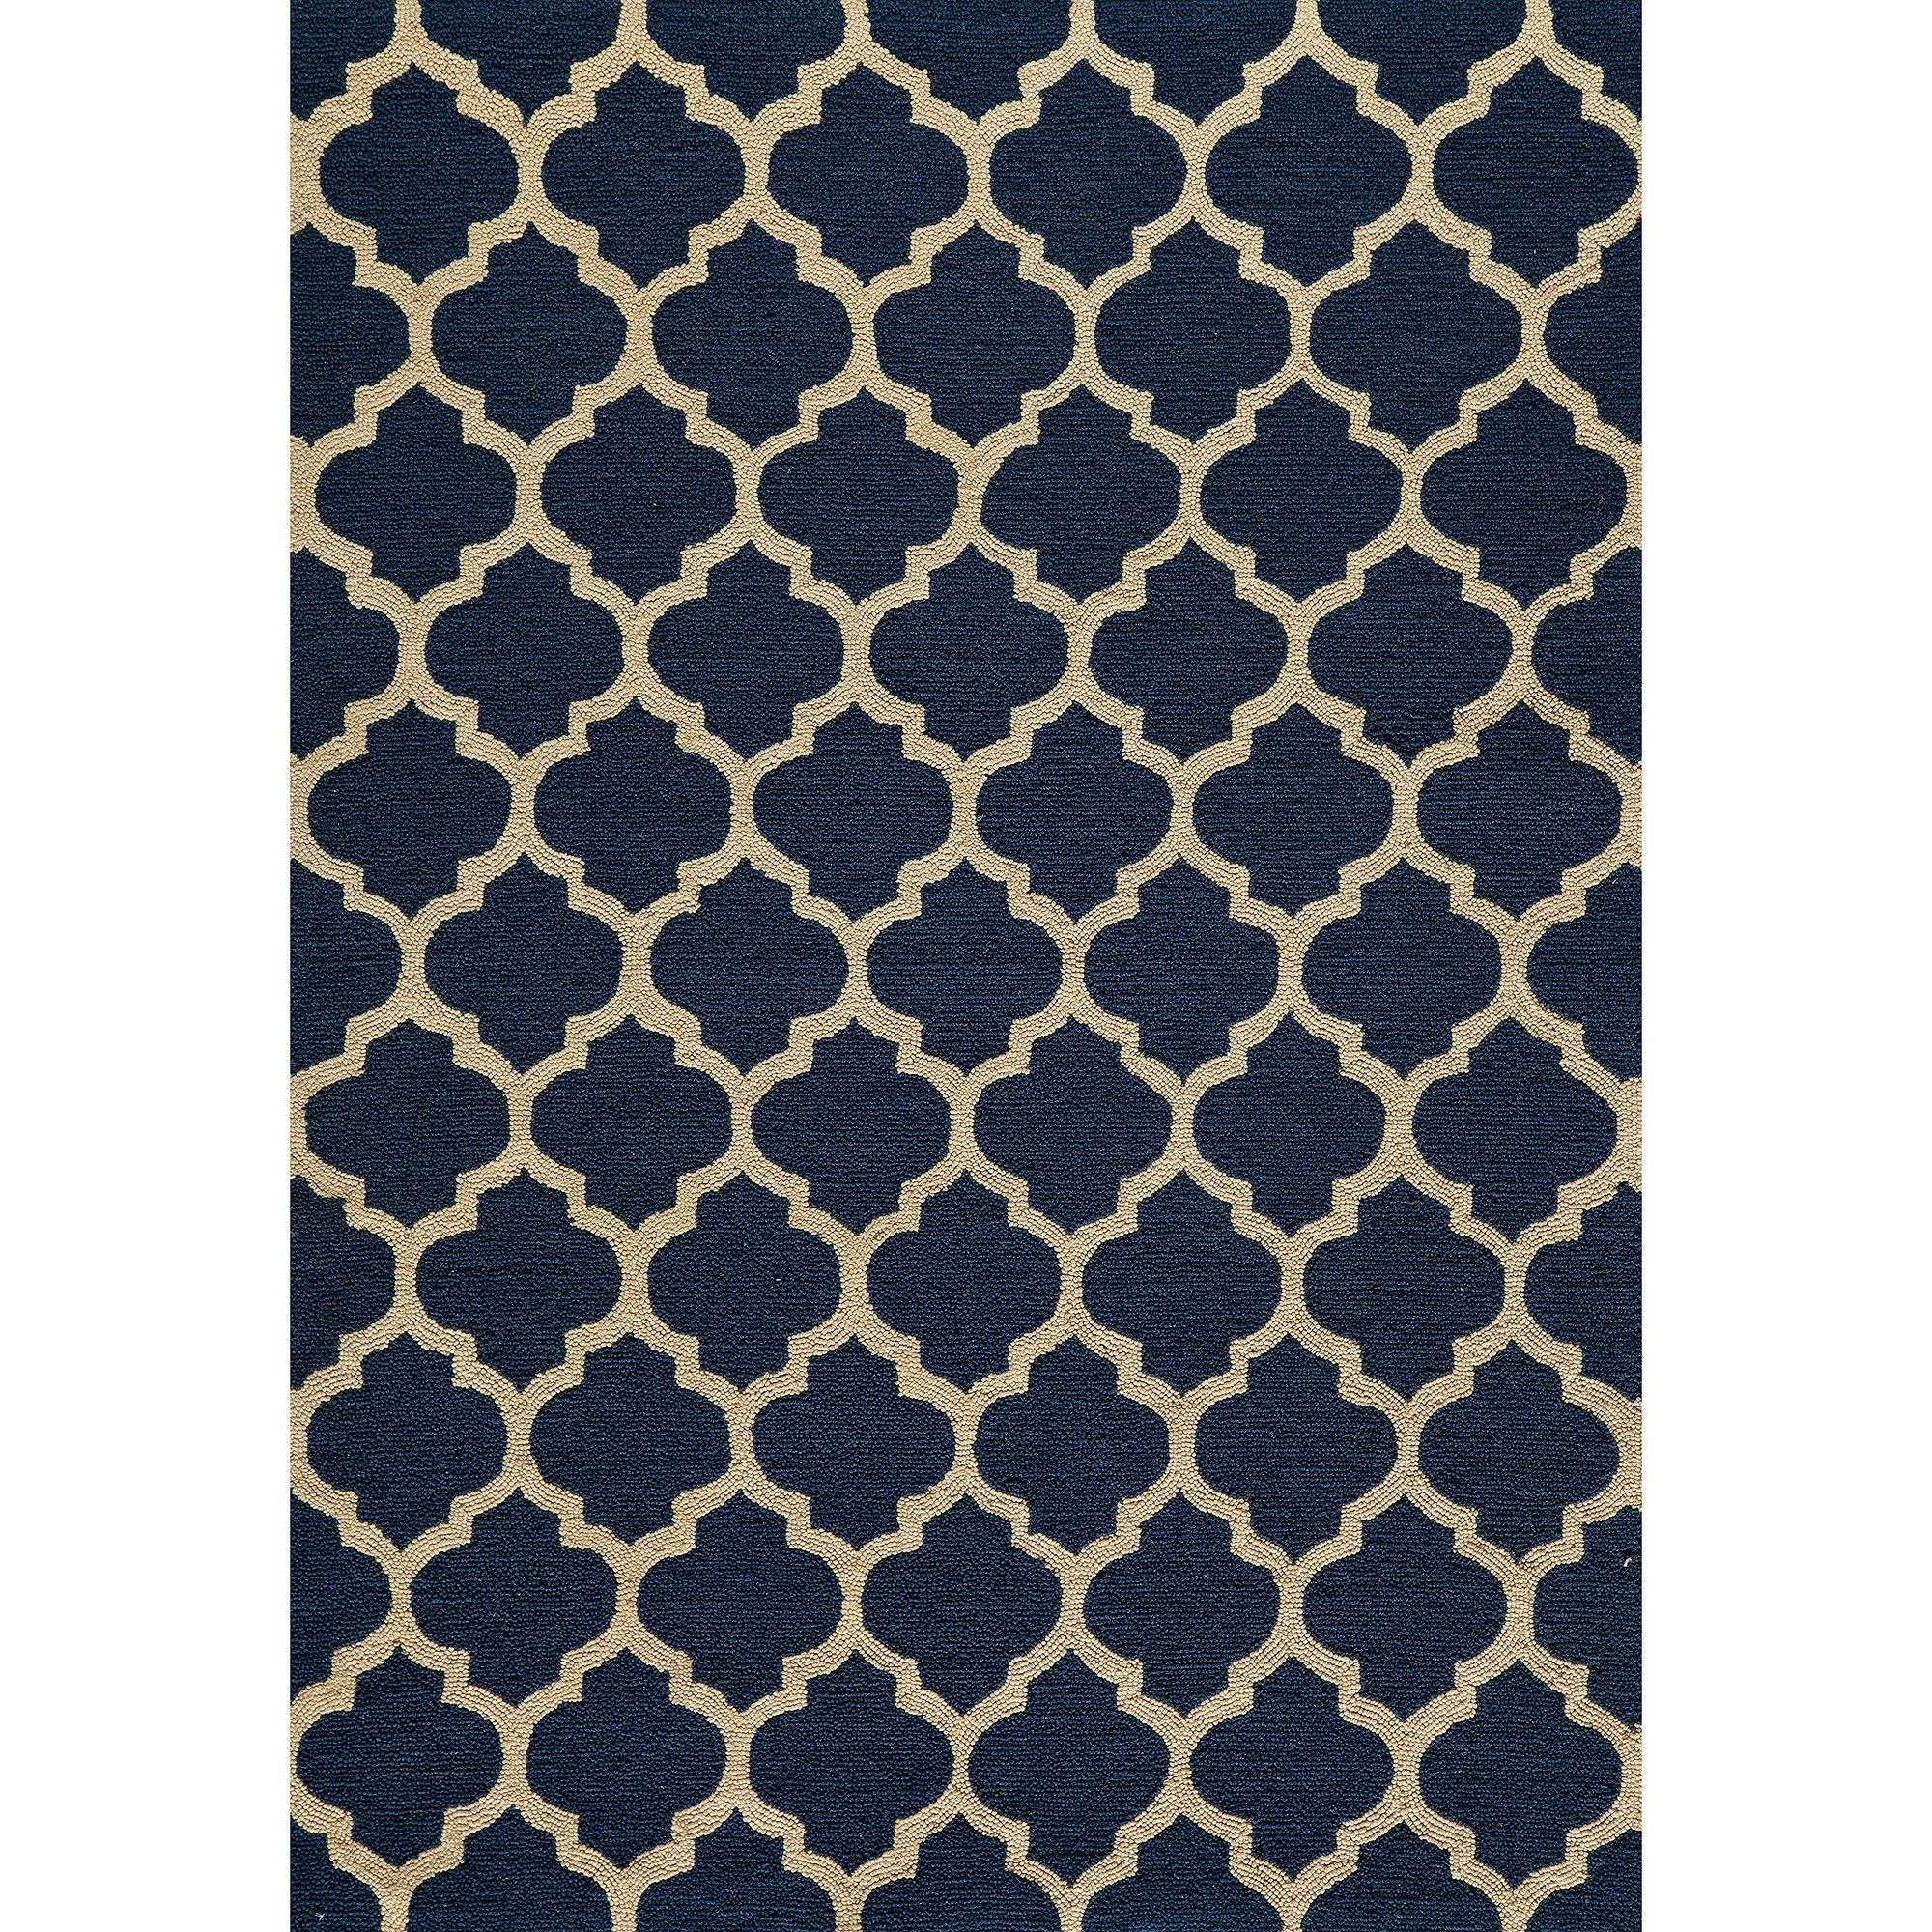 Simple Morocco Hand Tufted Rug Blue Hand Tufted Rugs Rugs